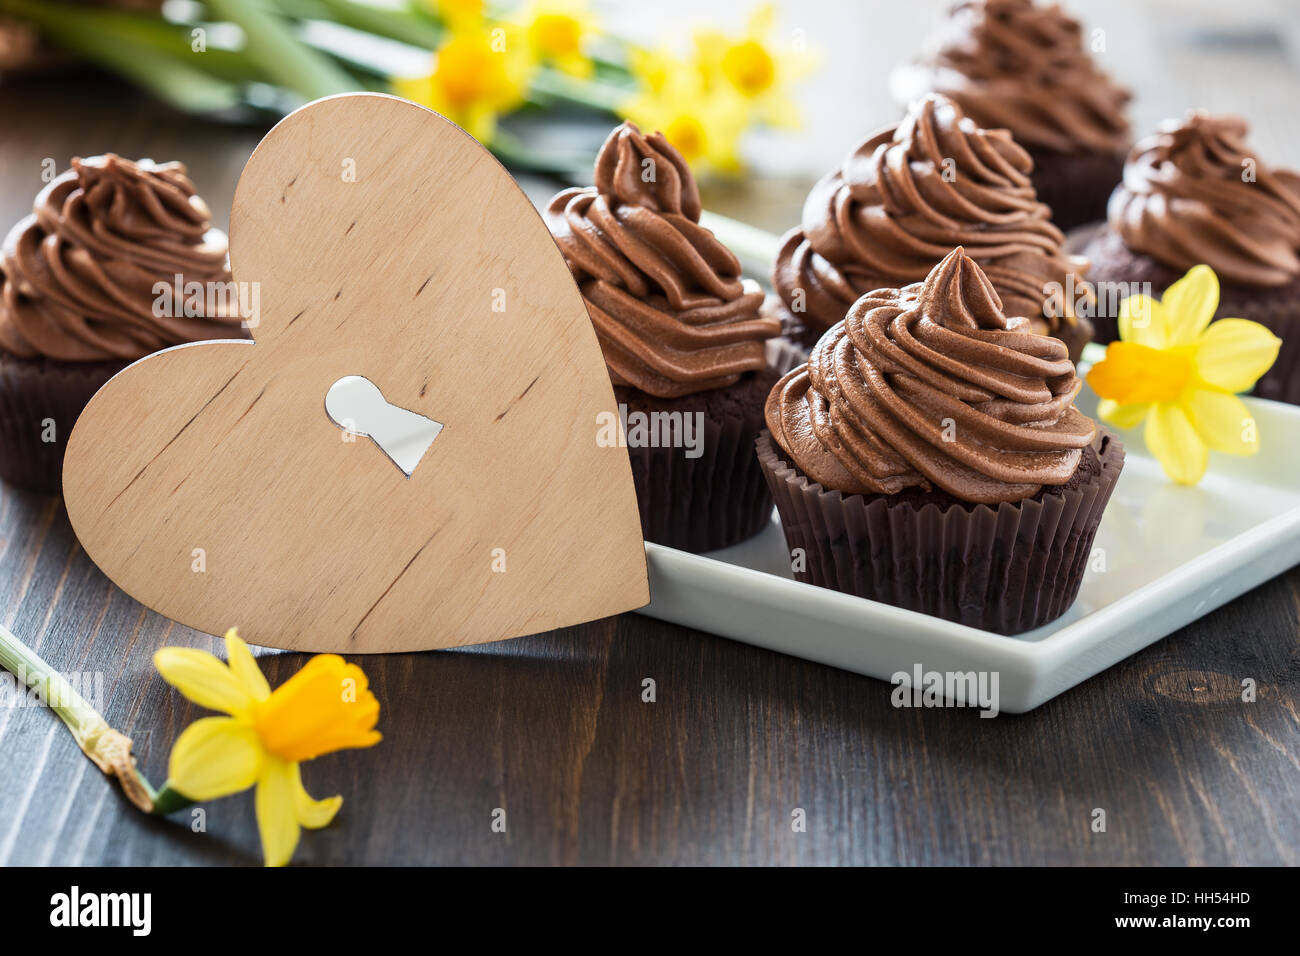 Delicious Mothers day  chocolate cupcakes  with spring flowers and wooden heart shape with free text space - Stock Image